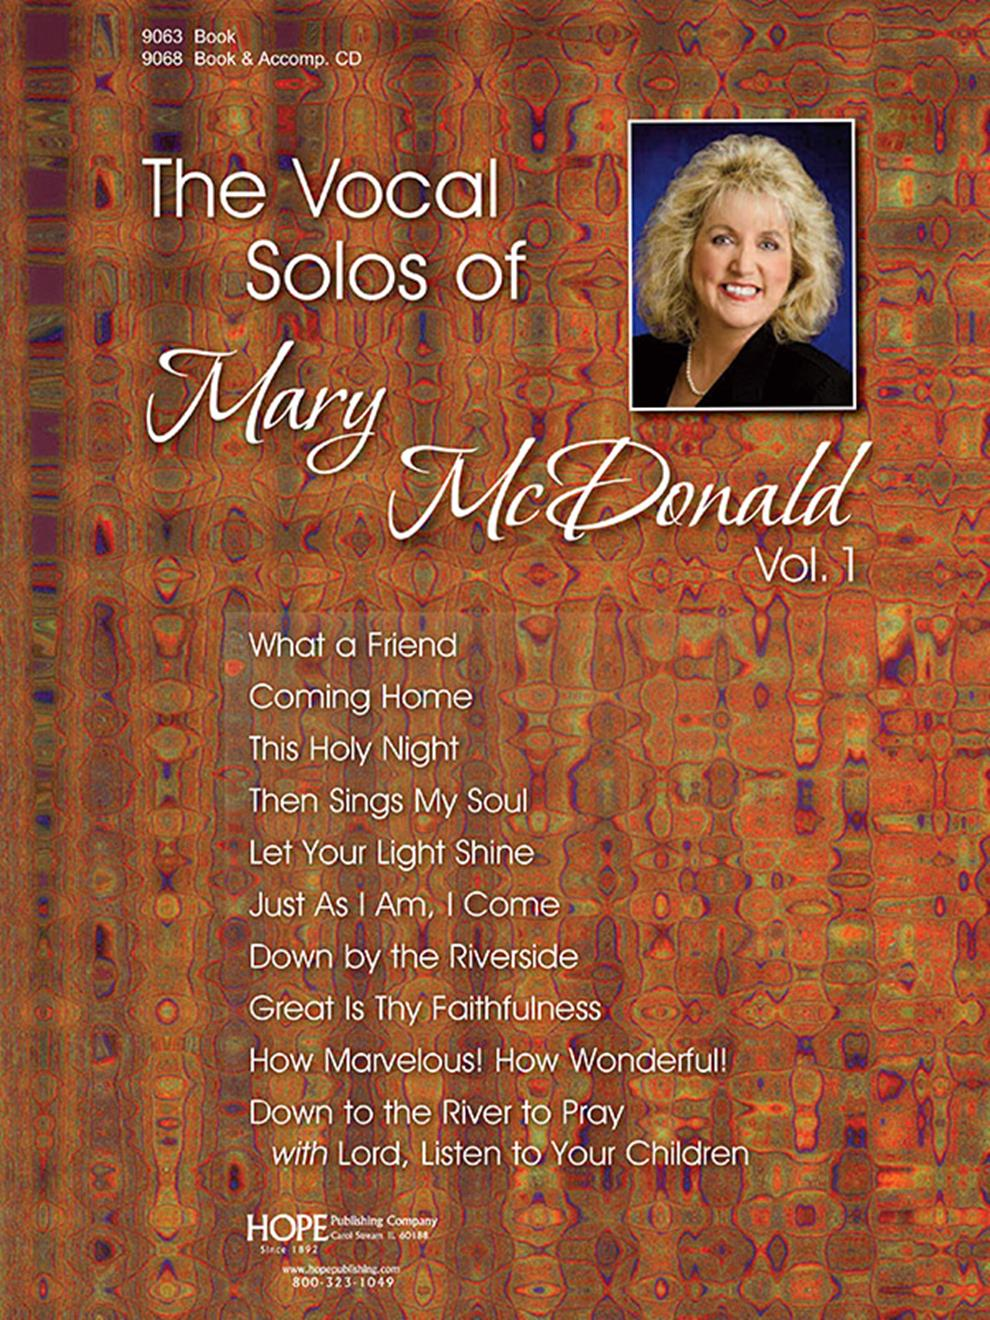 Vocal Solos of Mary McDonald Vol. 1 The - Score Cover Image